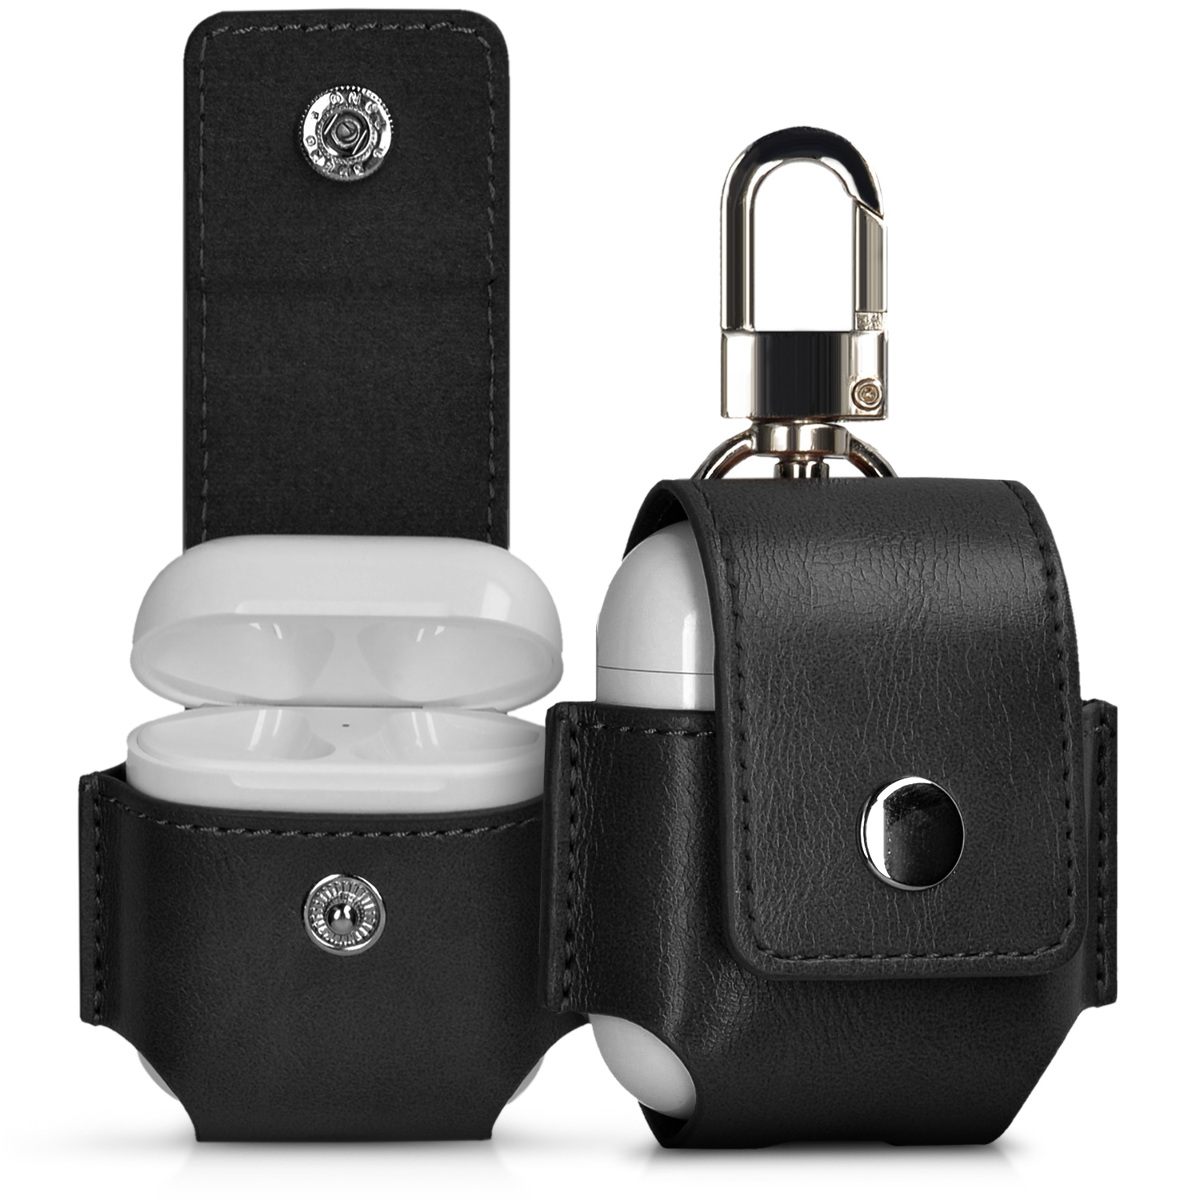 BAG FOR APPLE AIRPODS HEADPHONES ETUI CASE COVER IN BLACK PROTECTIVE CASE COVER - Berlin, Deutschland - BAG FOR APPLE AIRPODS HEADPHONES ETUI CASE COVER IN BLACK PROTECTIVE CASE COVER - Berlin, Deutschland